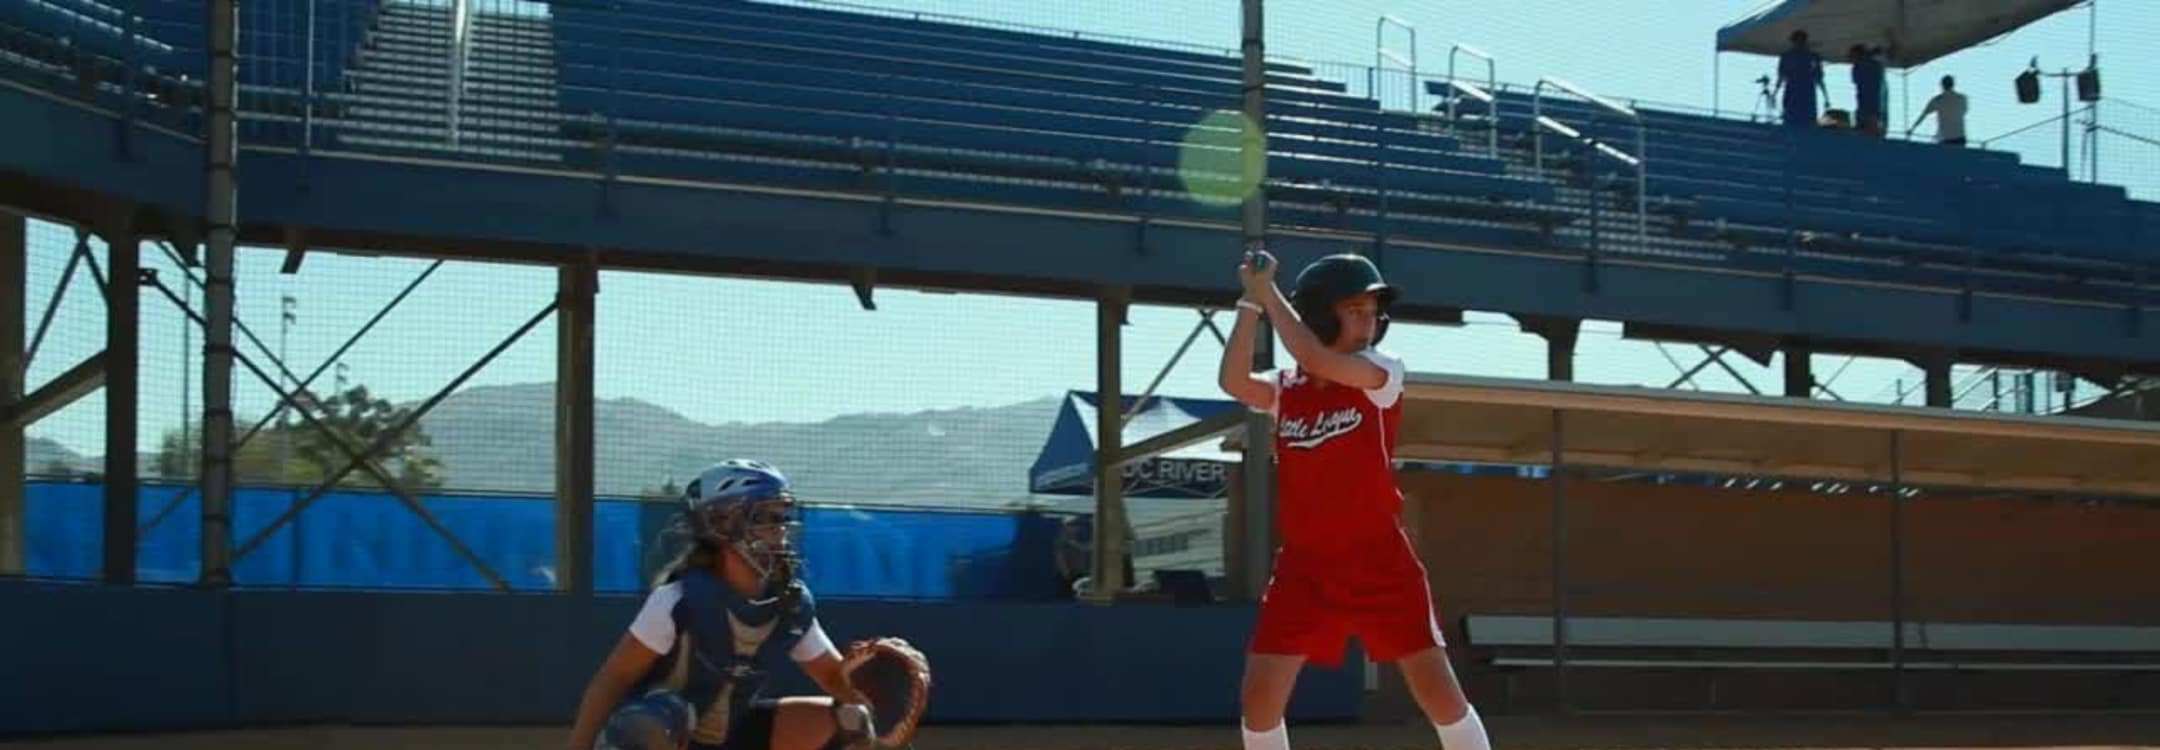 sb-catcher-and-batter-at-home